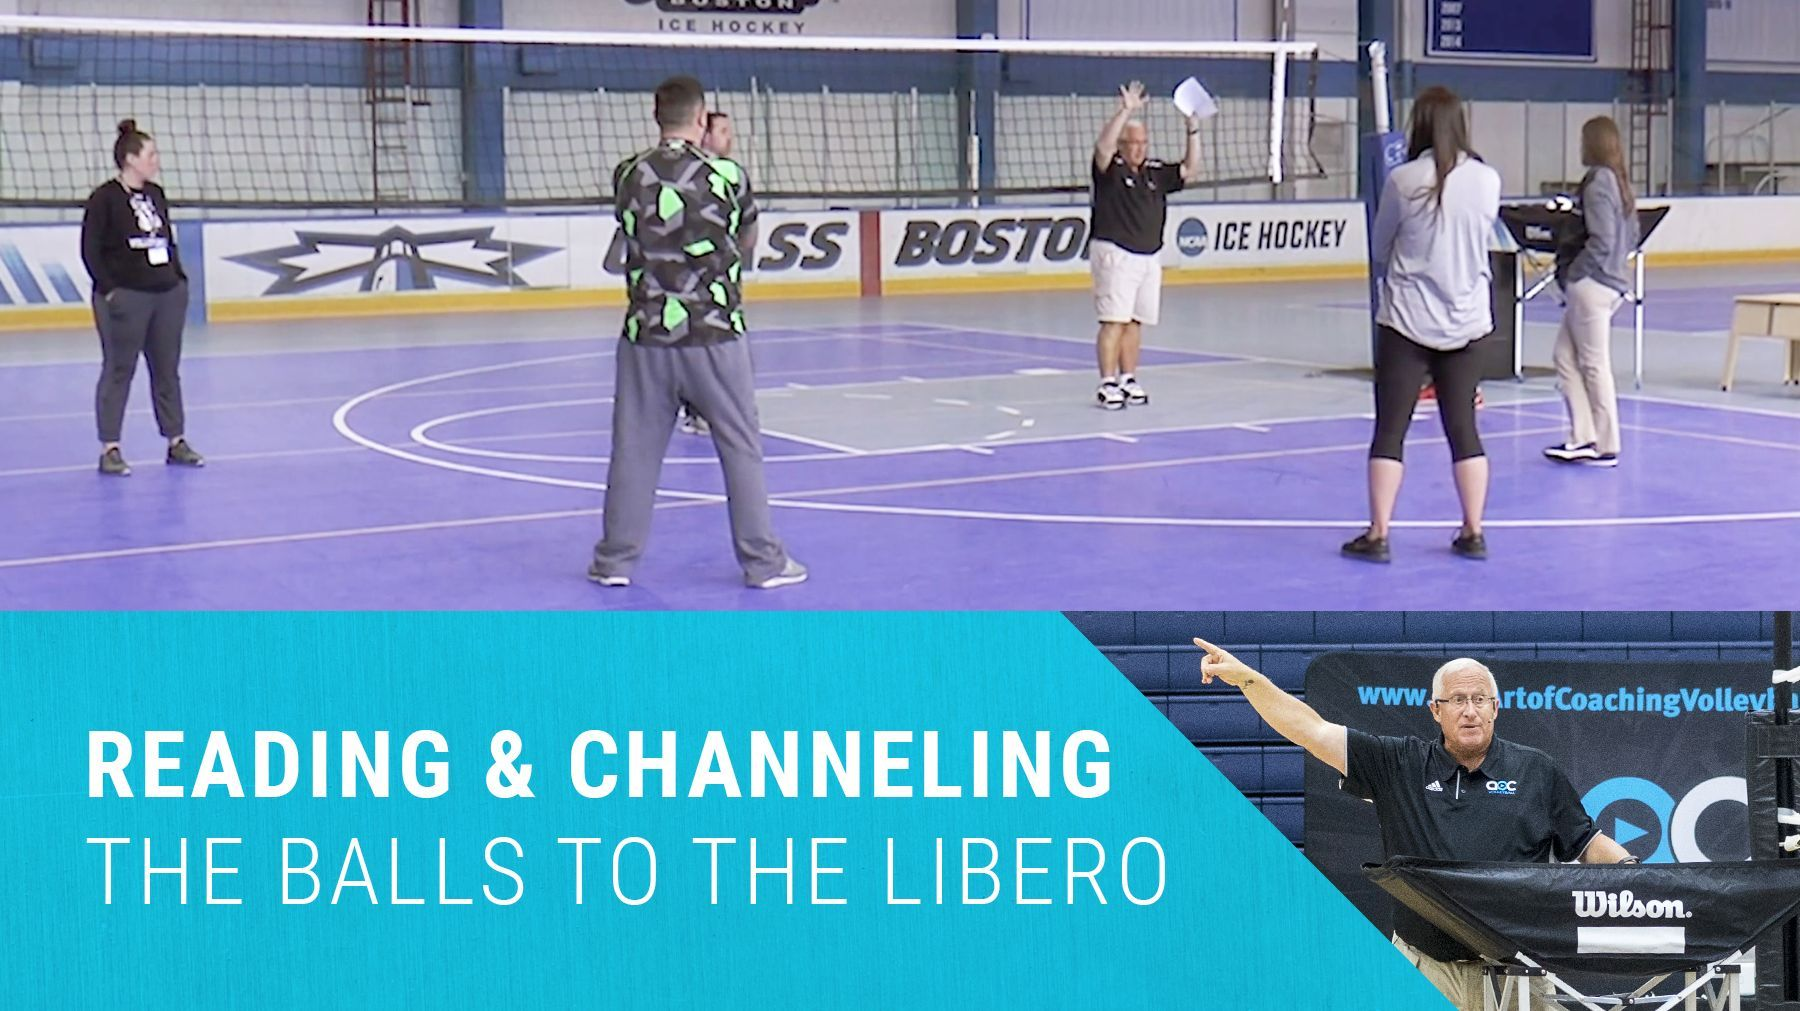 Reading Channeling The Balls To The Libero The Art Of Coaching Volleyball Coaching Volleyball Volleyball Drills Volleyball